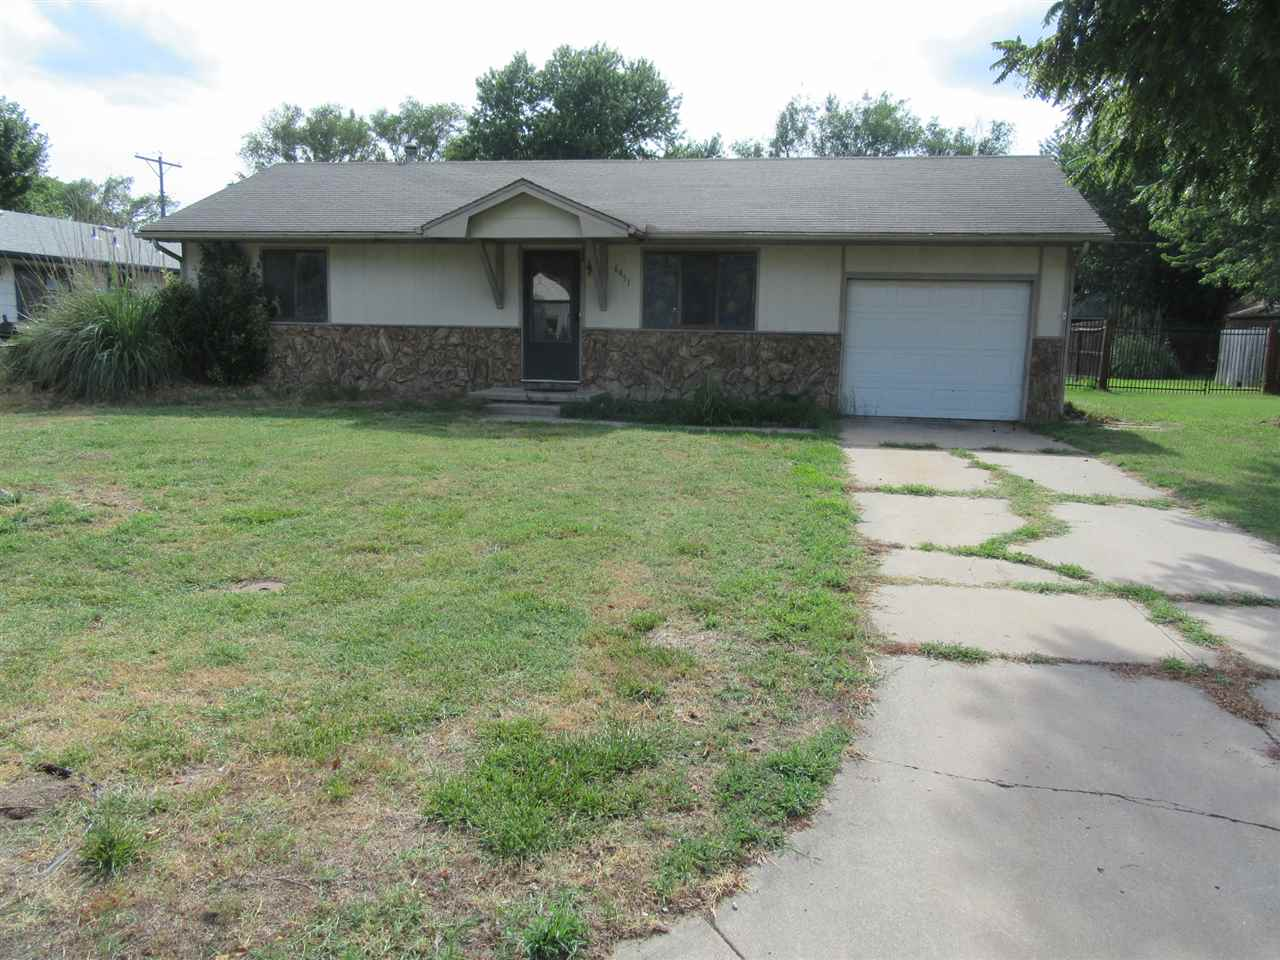 Nice Starter or Downsize Home in City limits of Haysville, with Haysville Schools!! 2 bedroom, 1 bat